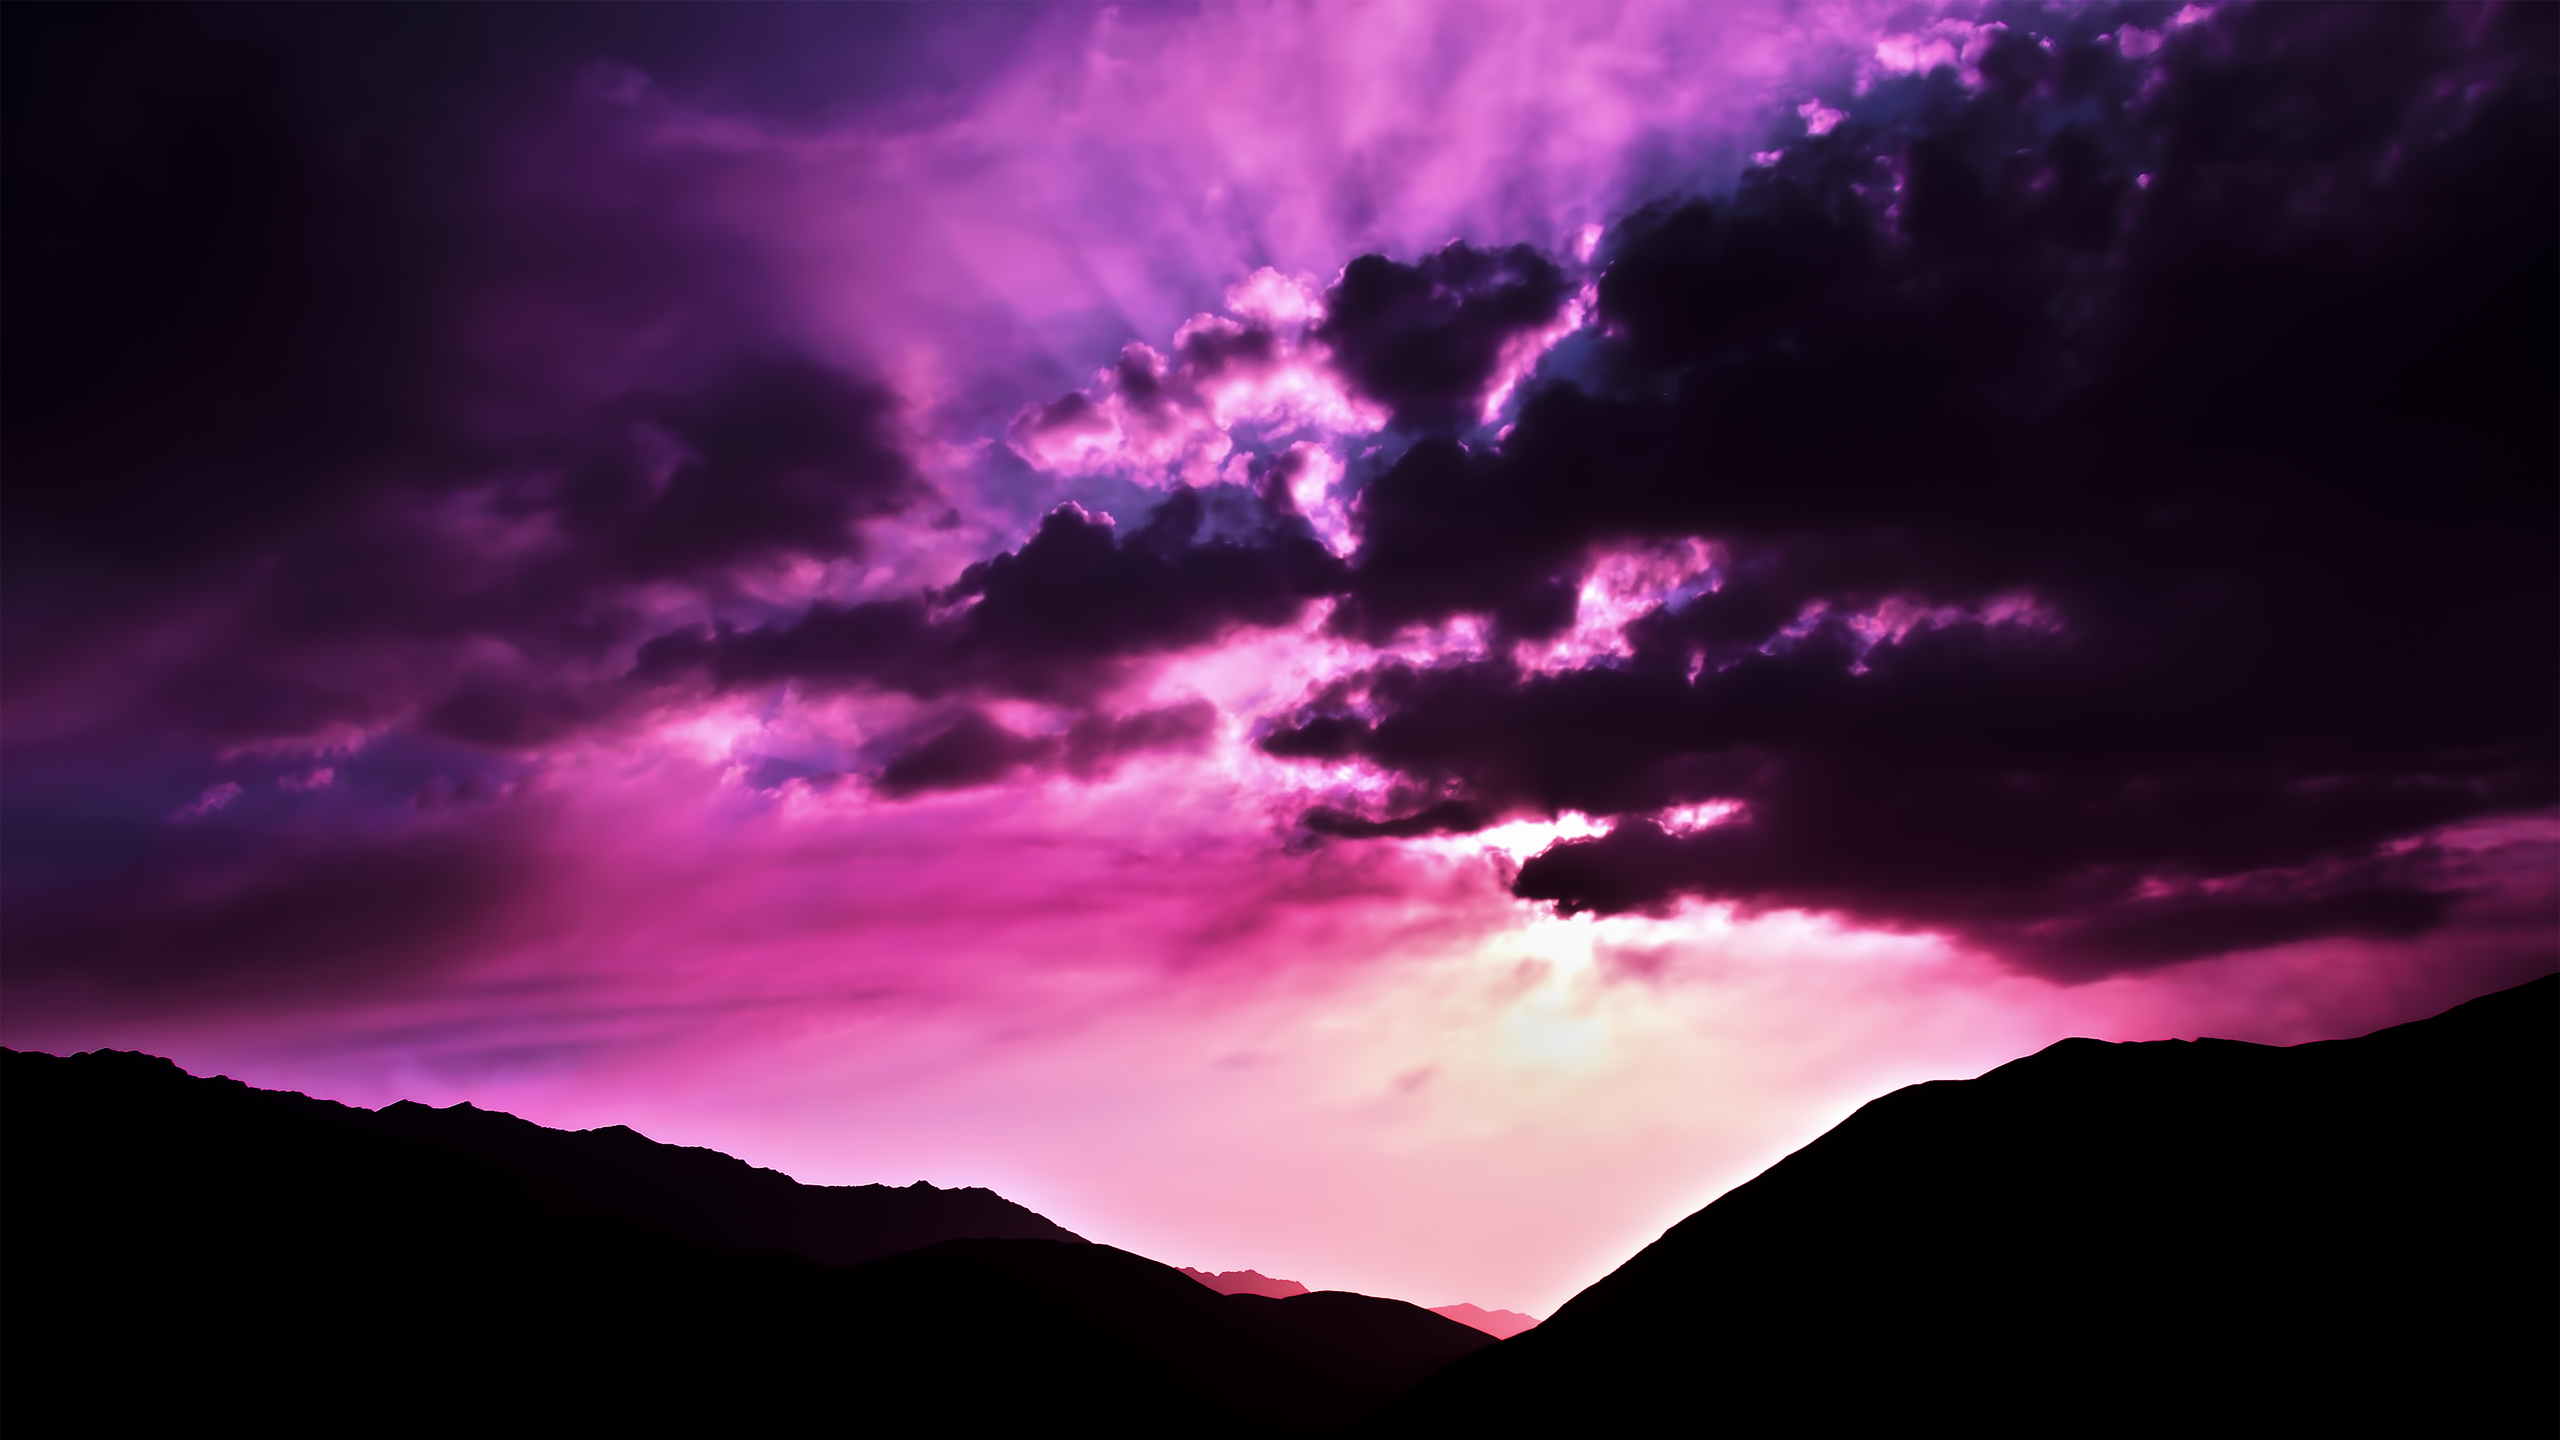 purple_morning_2560x1440